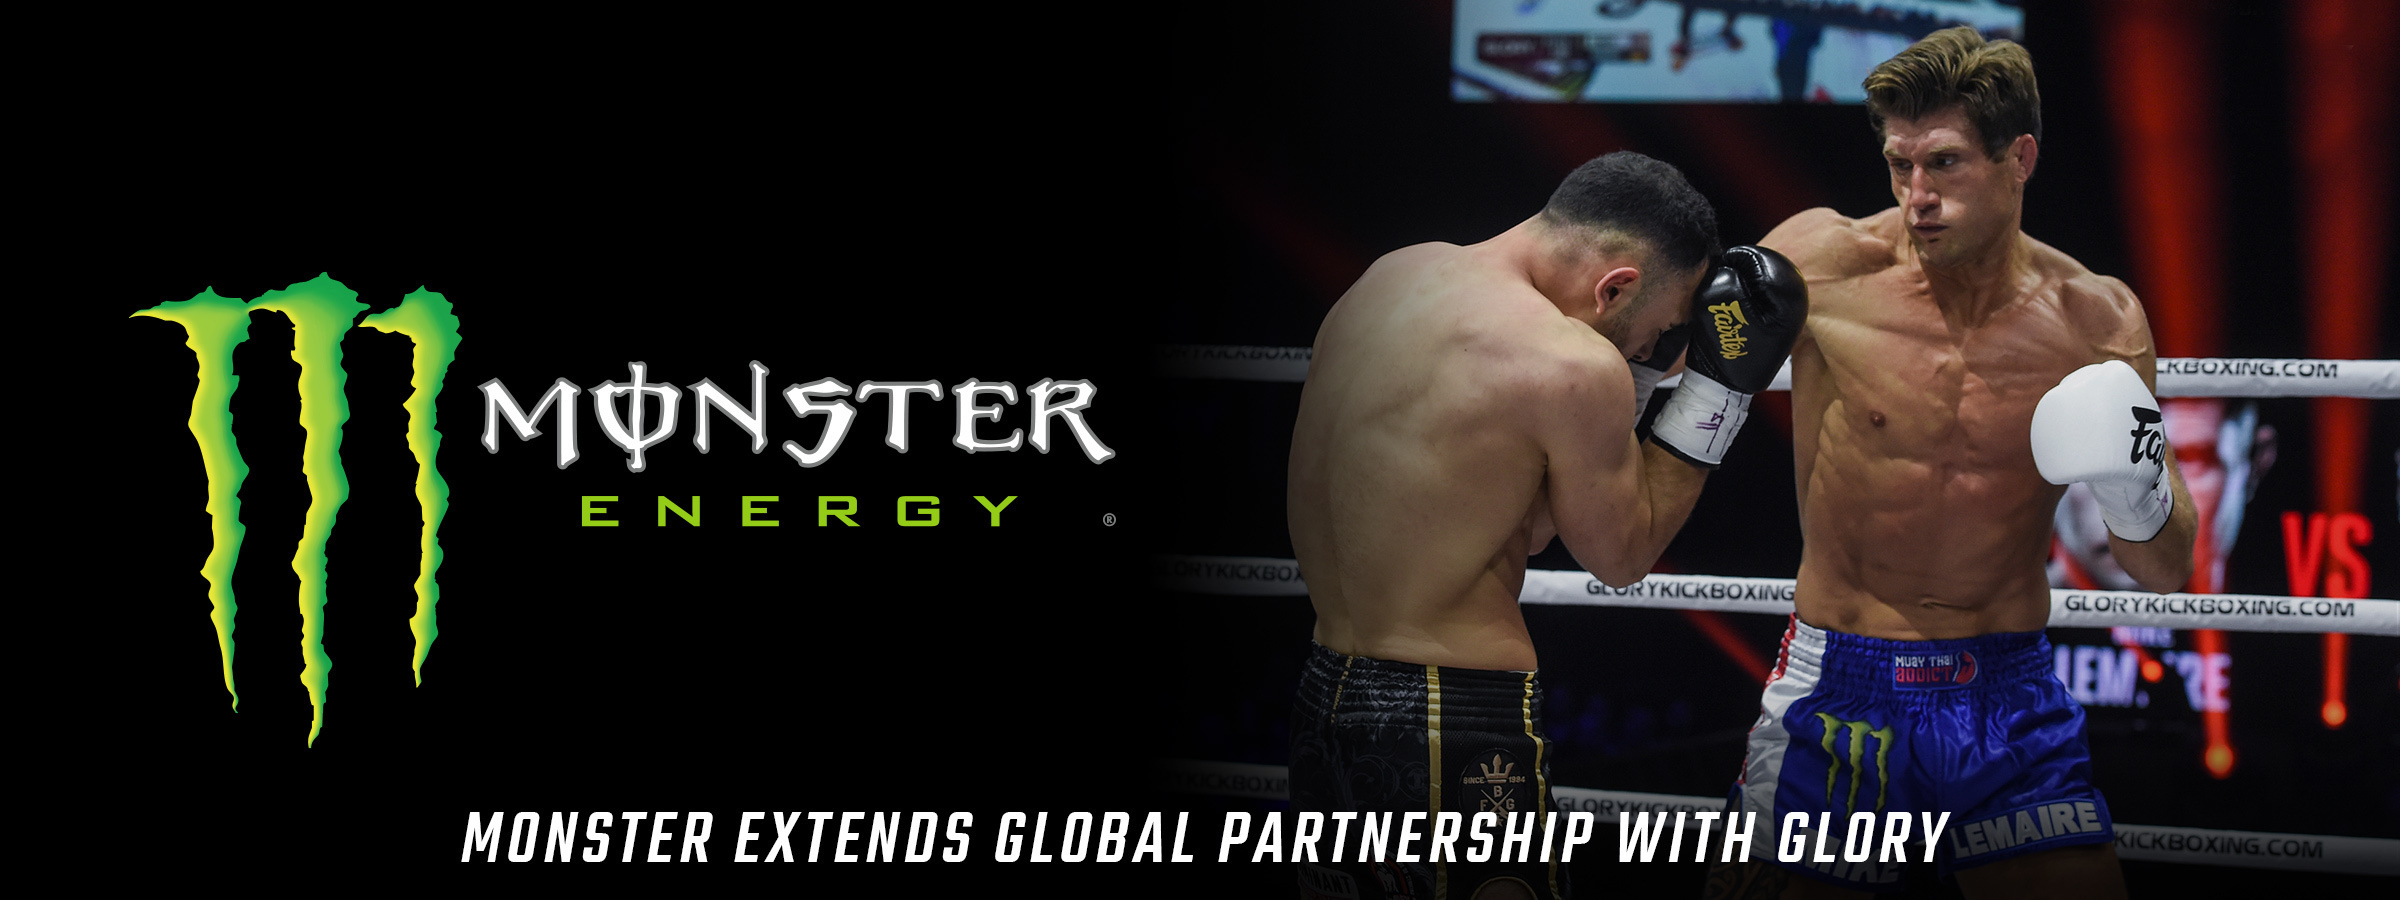 GLORY and Monster Energy extend global partnership